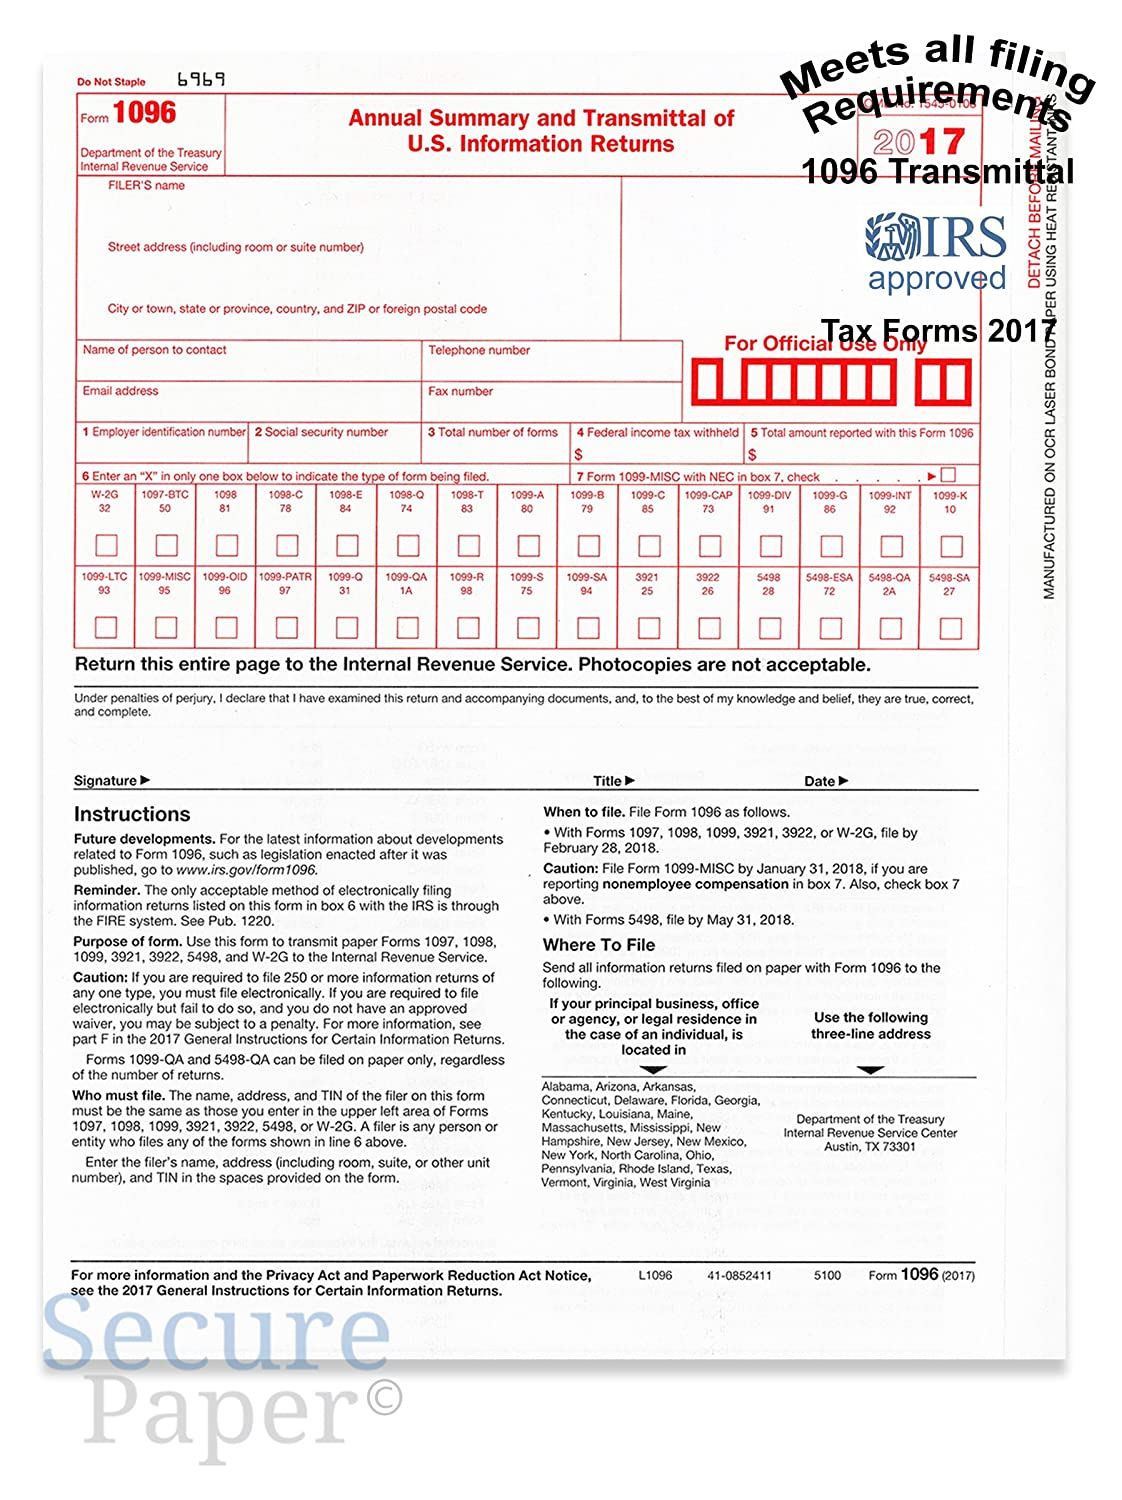 1096 Transmittal/summary Laser Tax Form -25 Pack- 2017